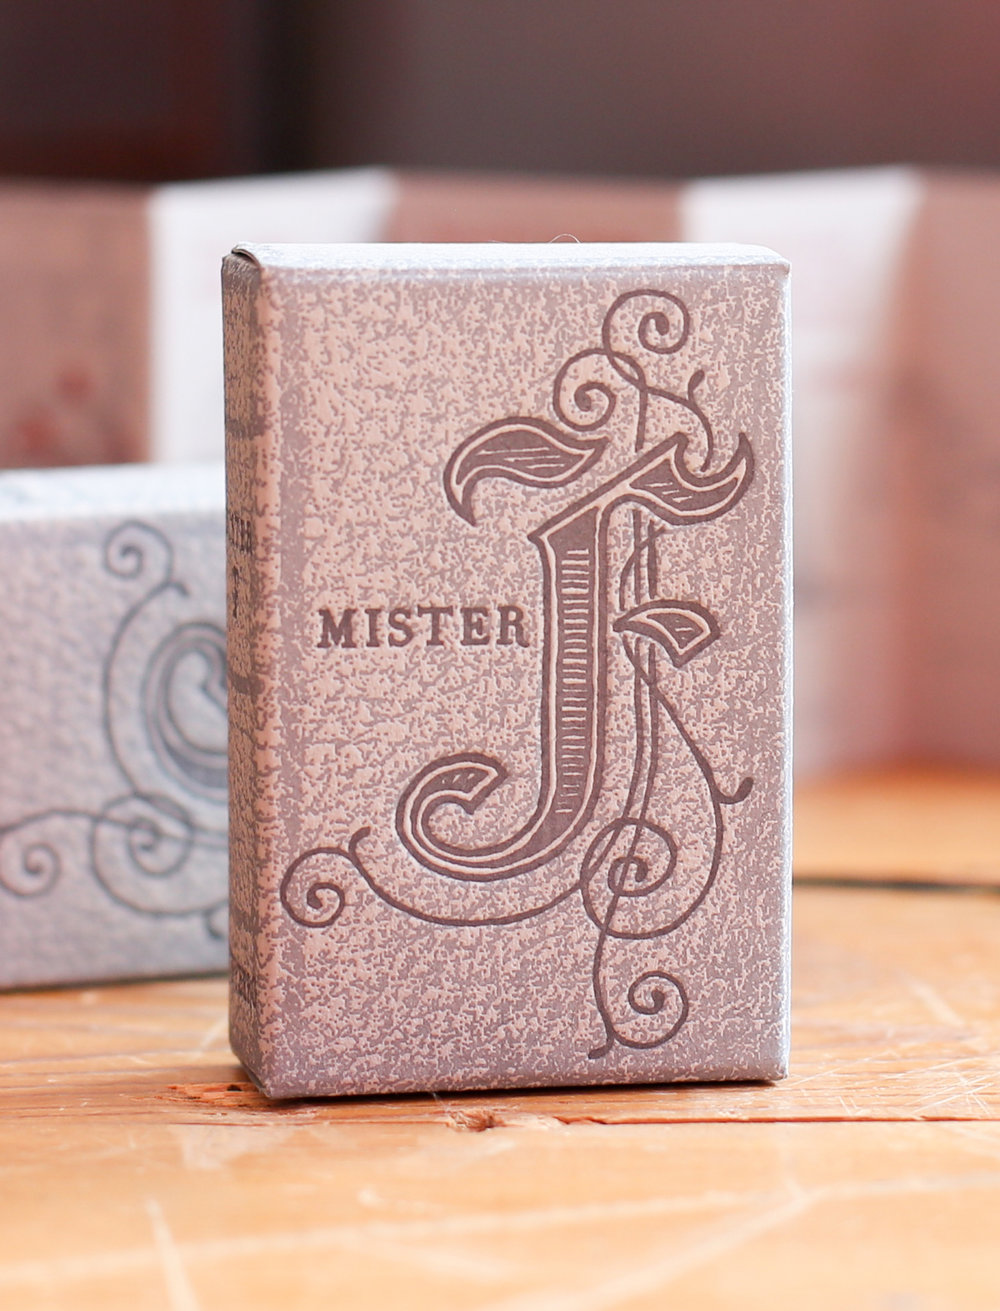 Mister F - Packaging